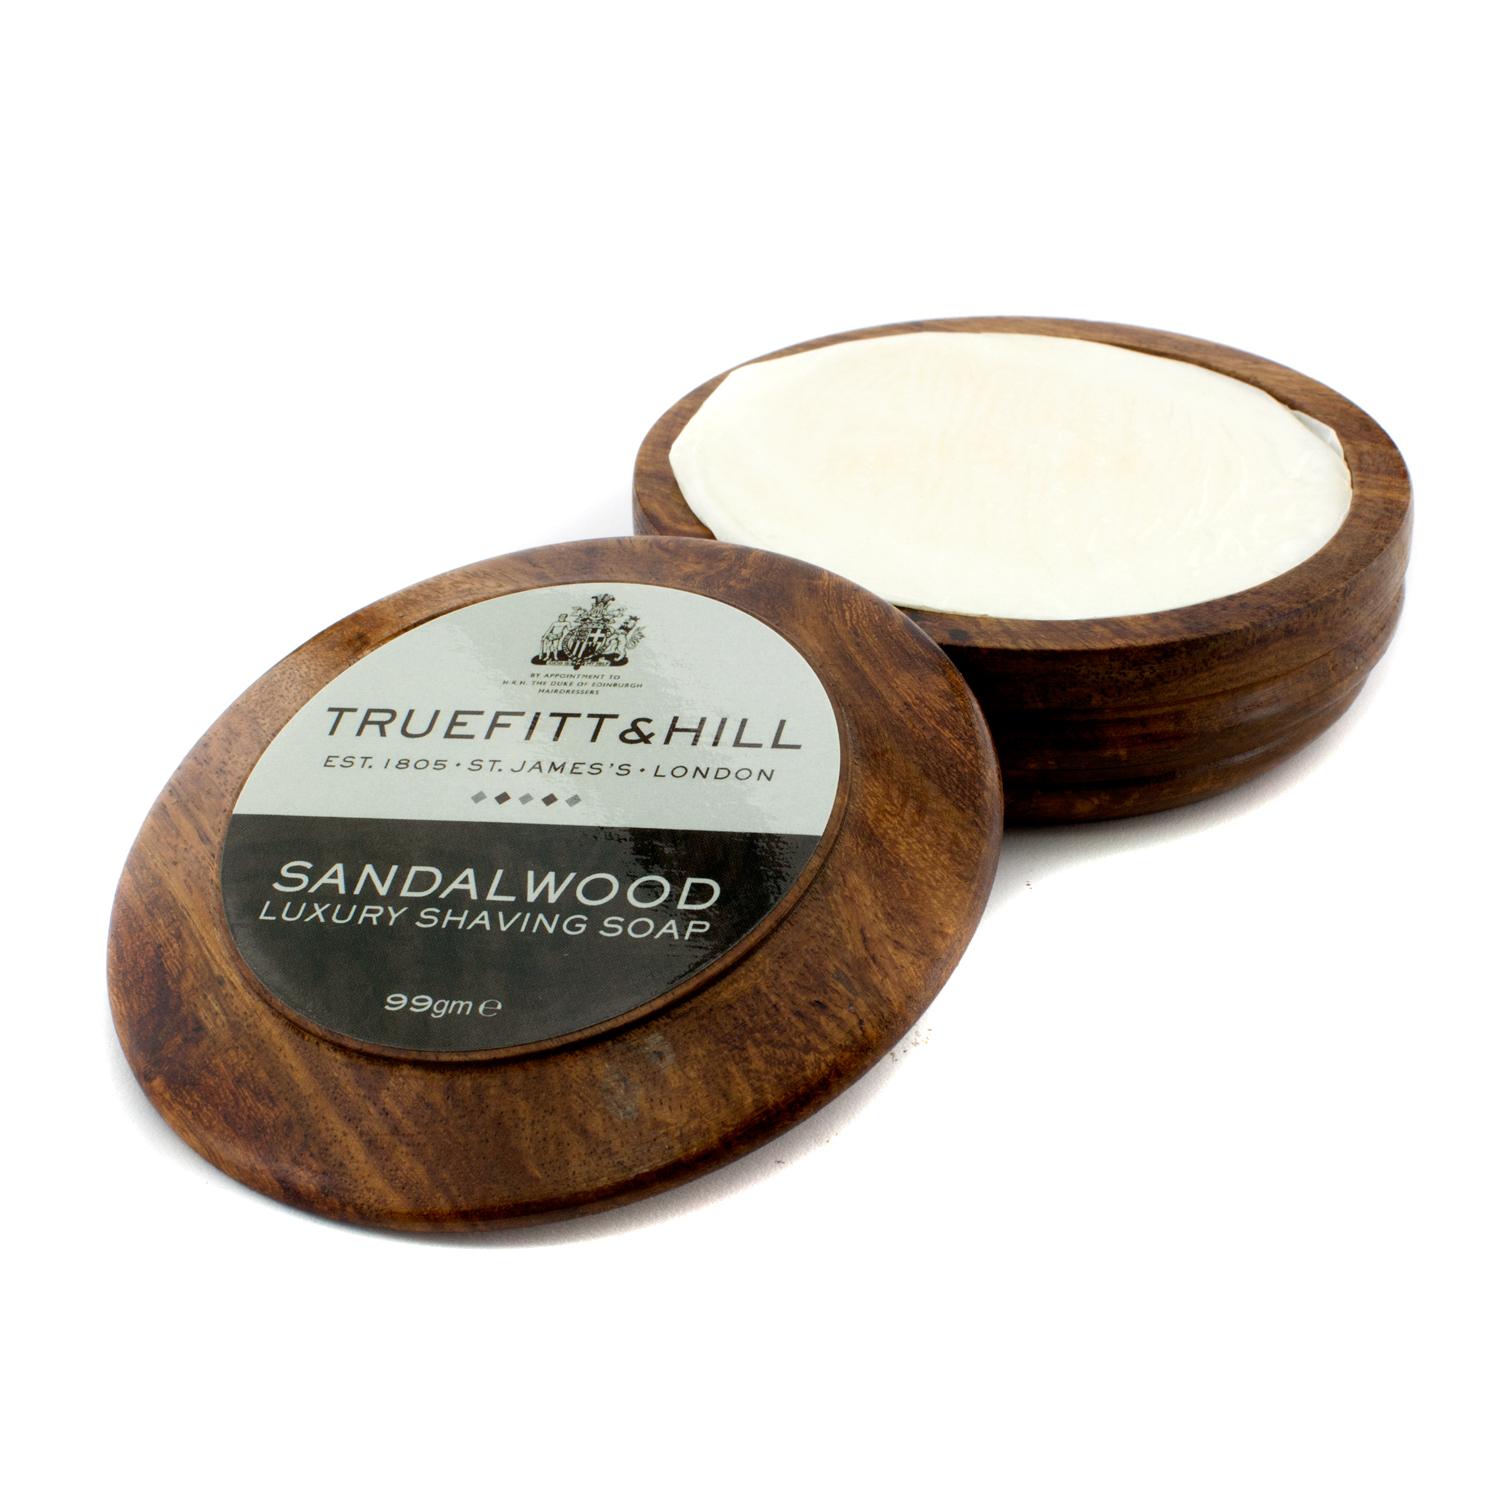 Truefitt & Hill - Sandalwood Luxury Shaving Soap - 99g